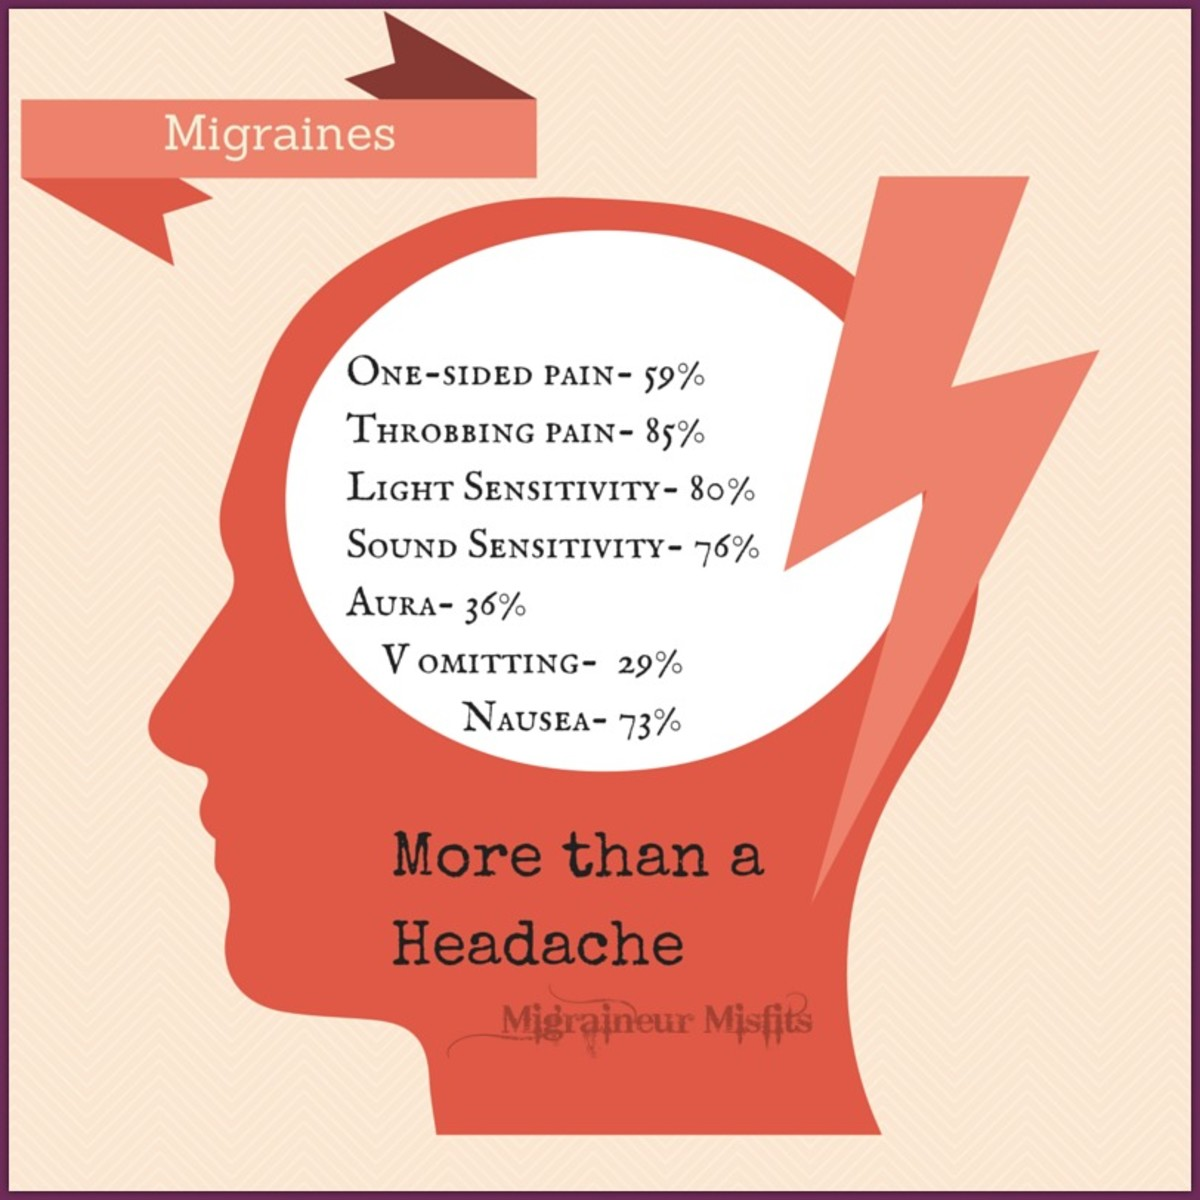 Migraines: Not just a headache